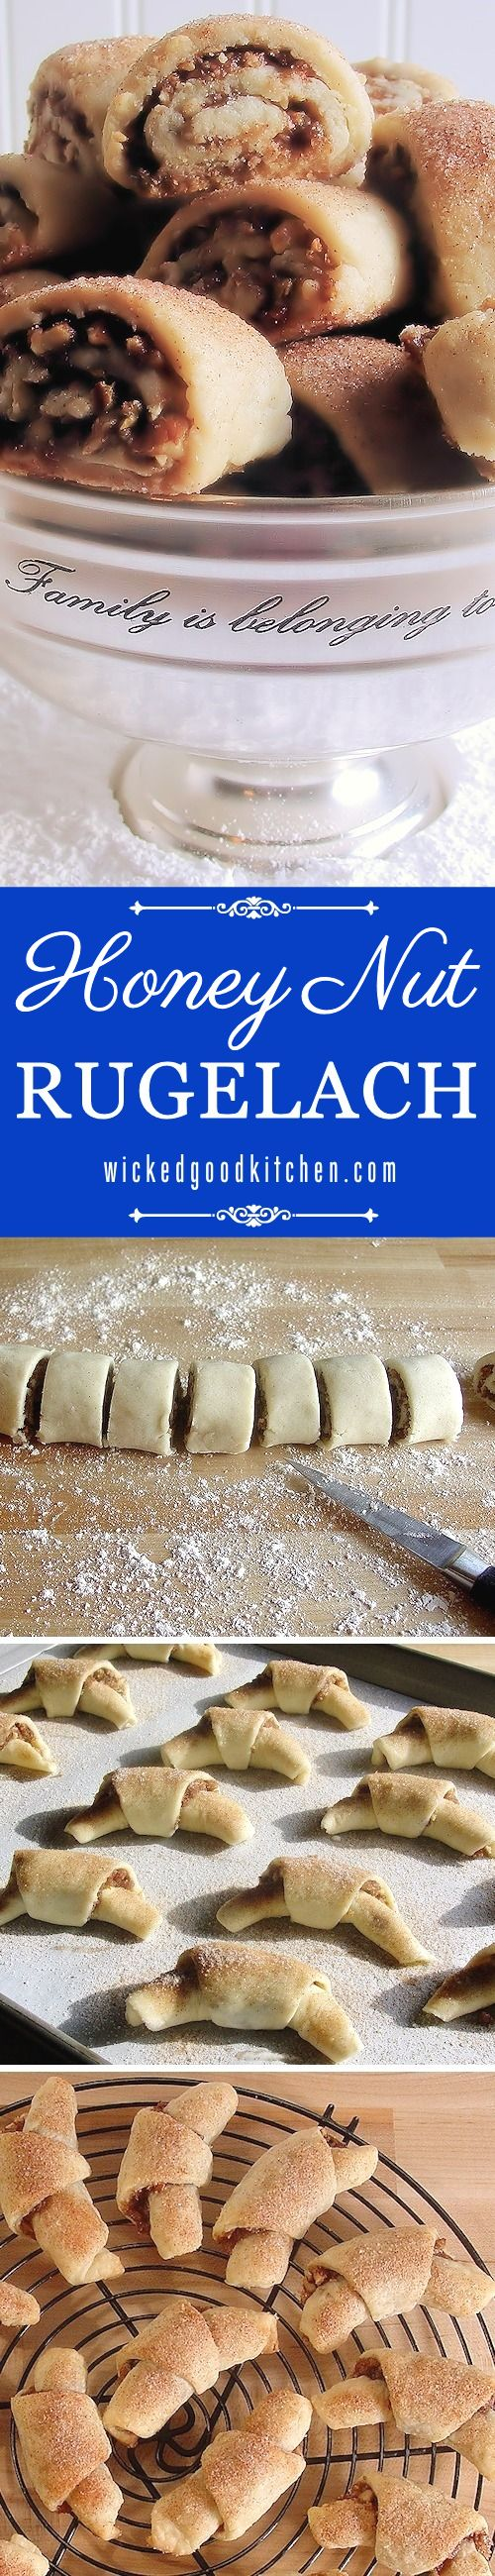 Honey Nut Rugelach Holiday Cookies ~ Scrumptious and THE BEST! Buttery and flaky cream cheese pastry, irresistible honey-nut filling and a crunchy cinnamon-sugar topping. Includes Baklava, Cranberry Orange Pecan and Chocolate Chip Cookie variations. Everyone will LOVE them for #Hanukkah and #Christmas #Holidays!